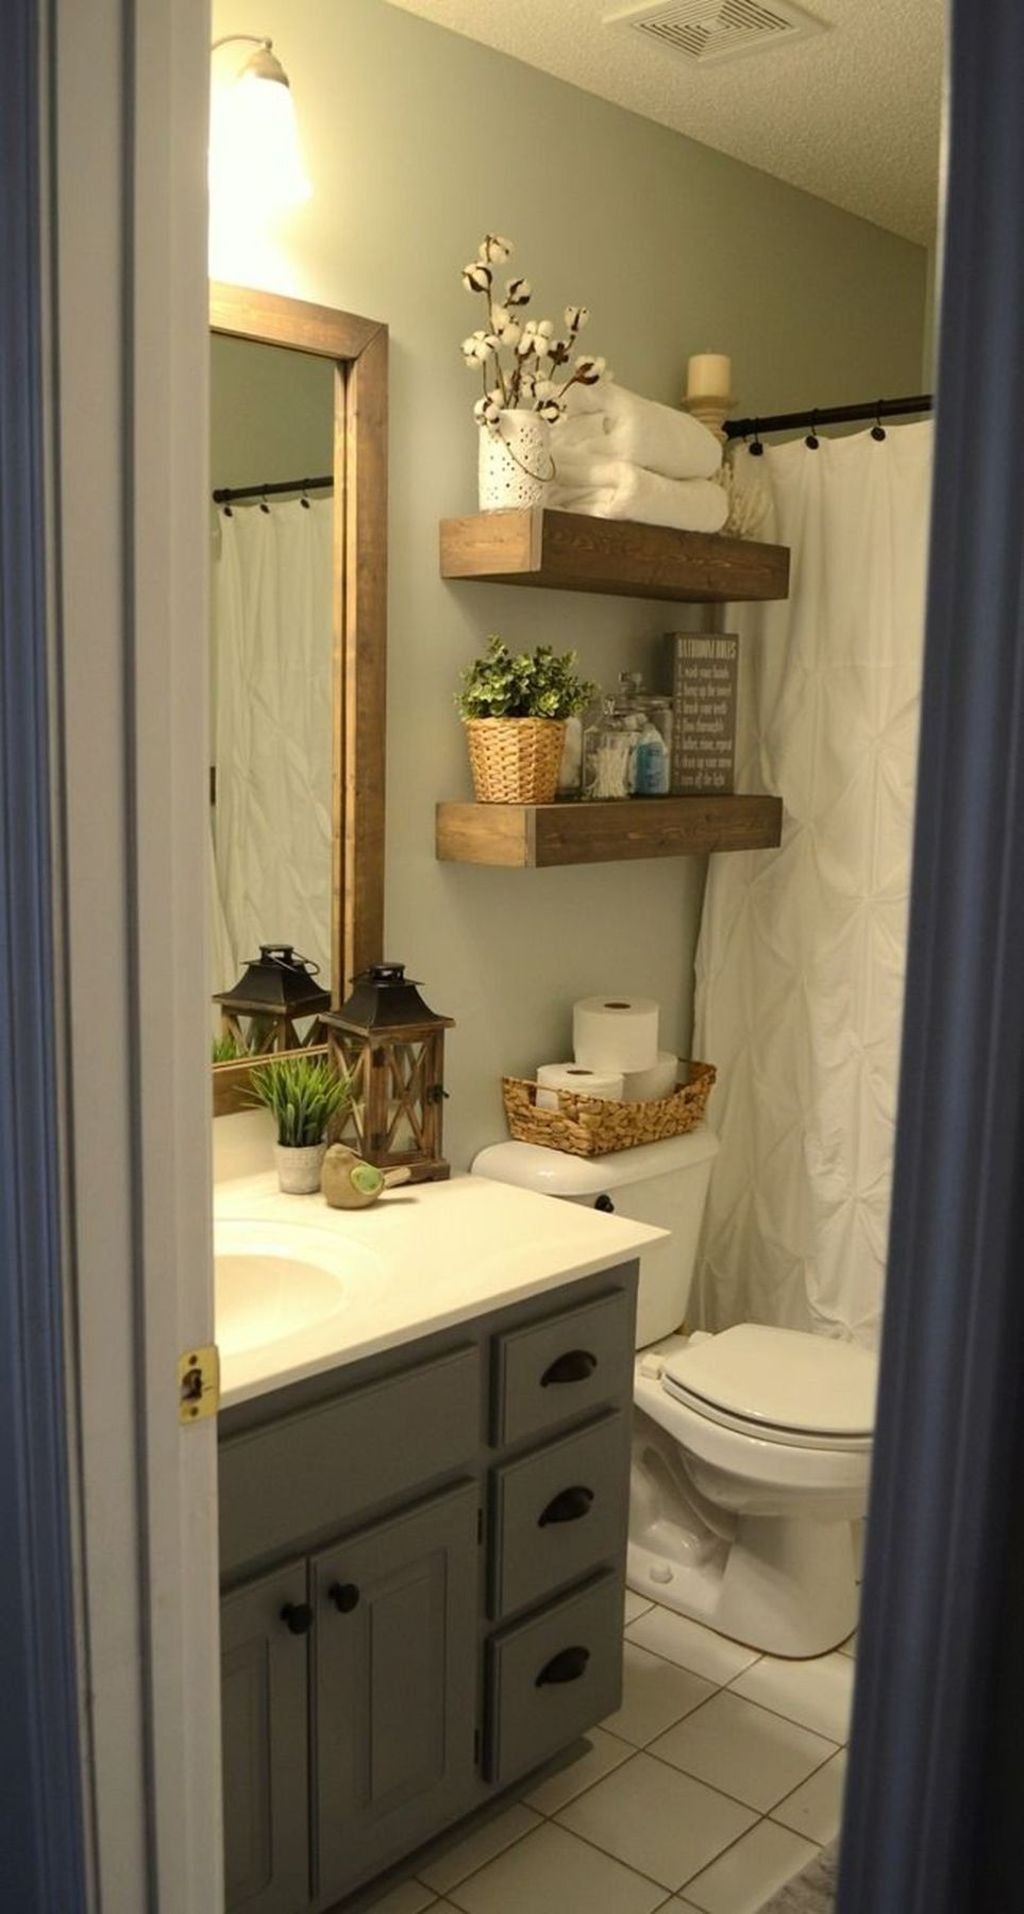 Awesome 99 Stunning Farmhouse Small Bathroom Design Ideas More At